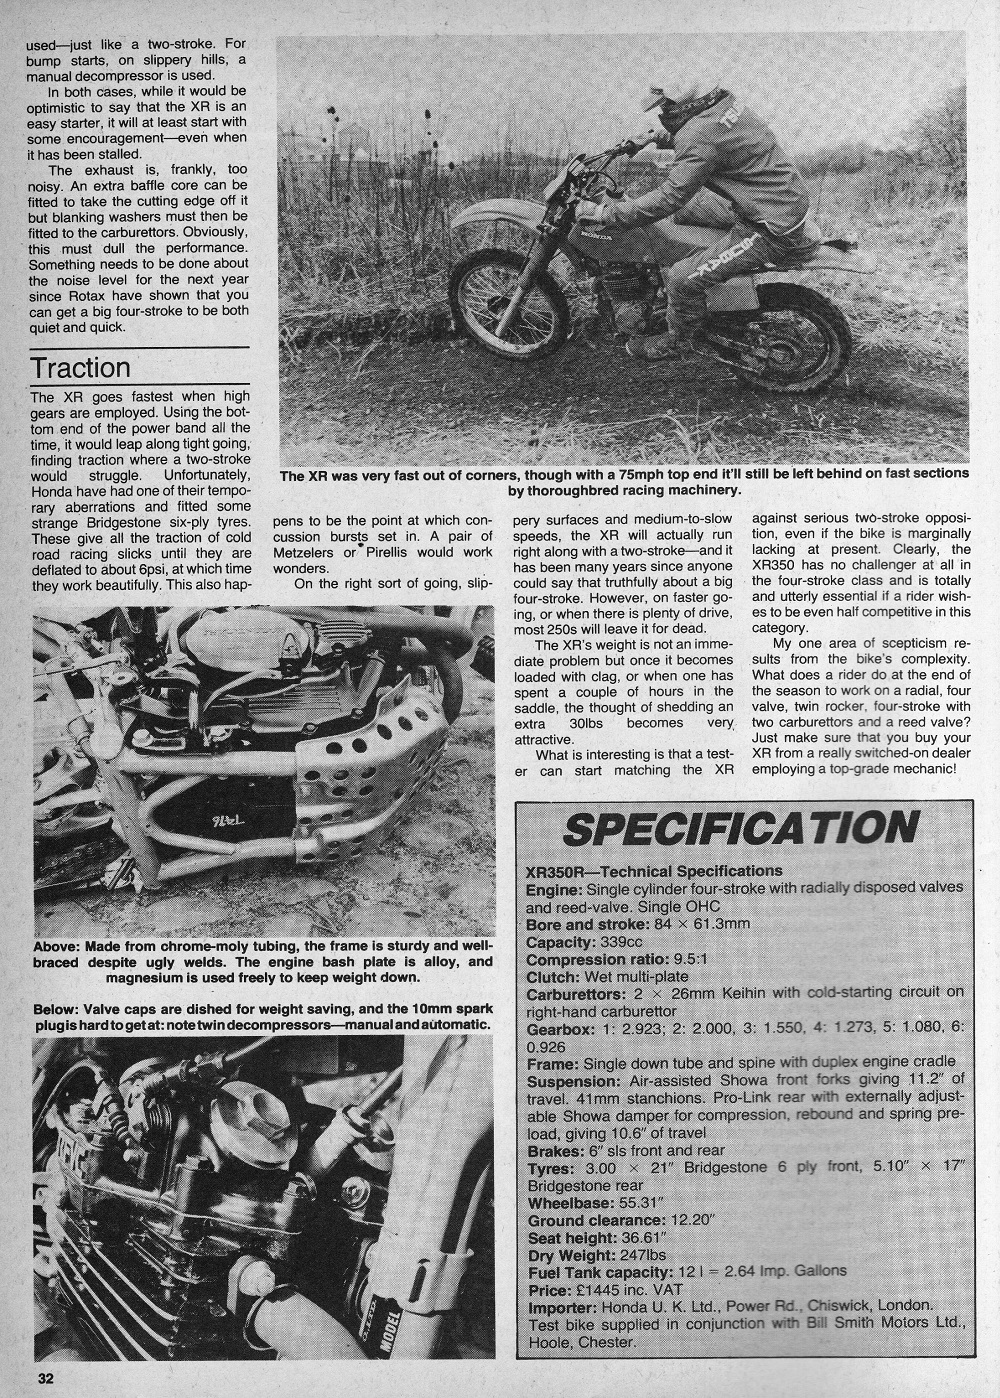 1983 Honda XR350R3 road test..jpg